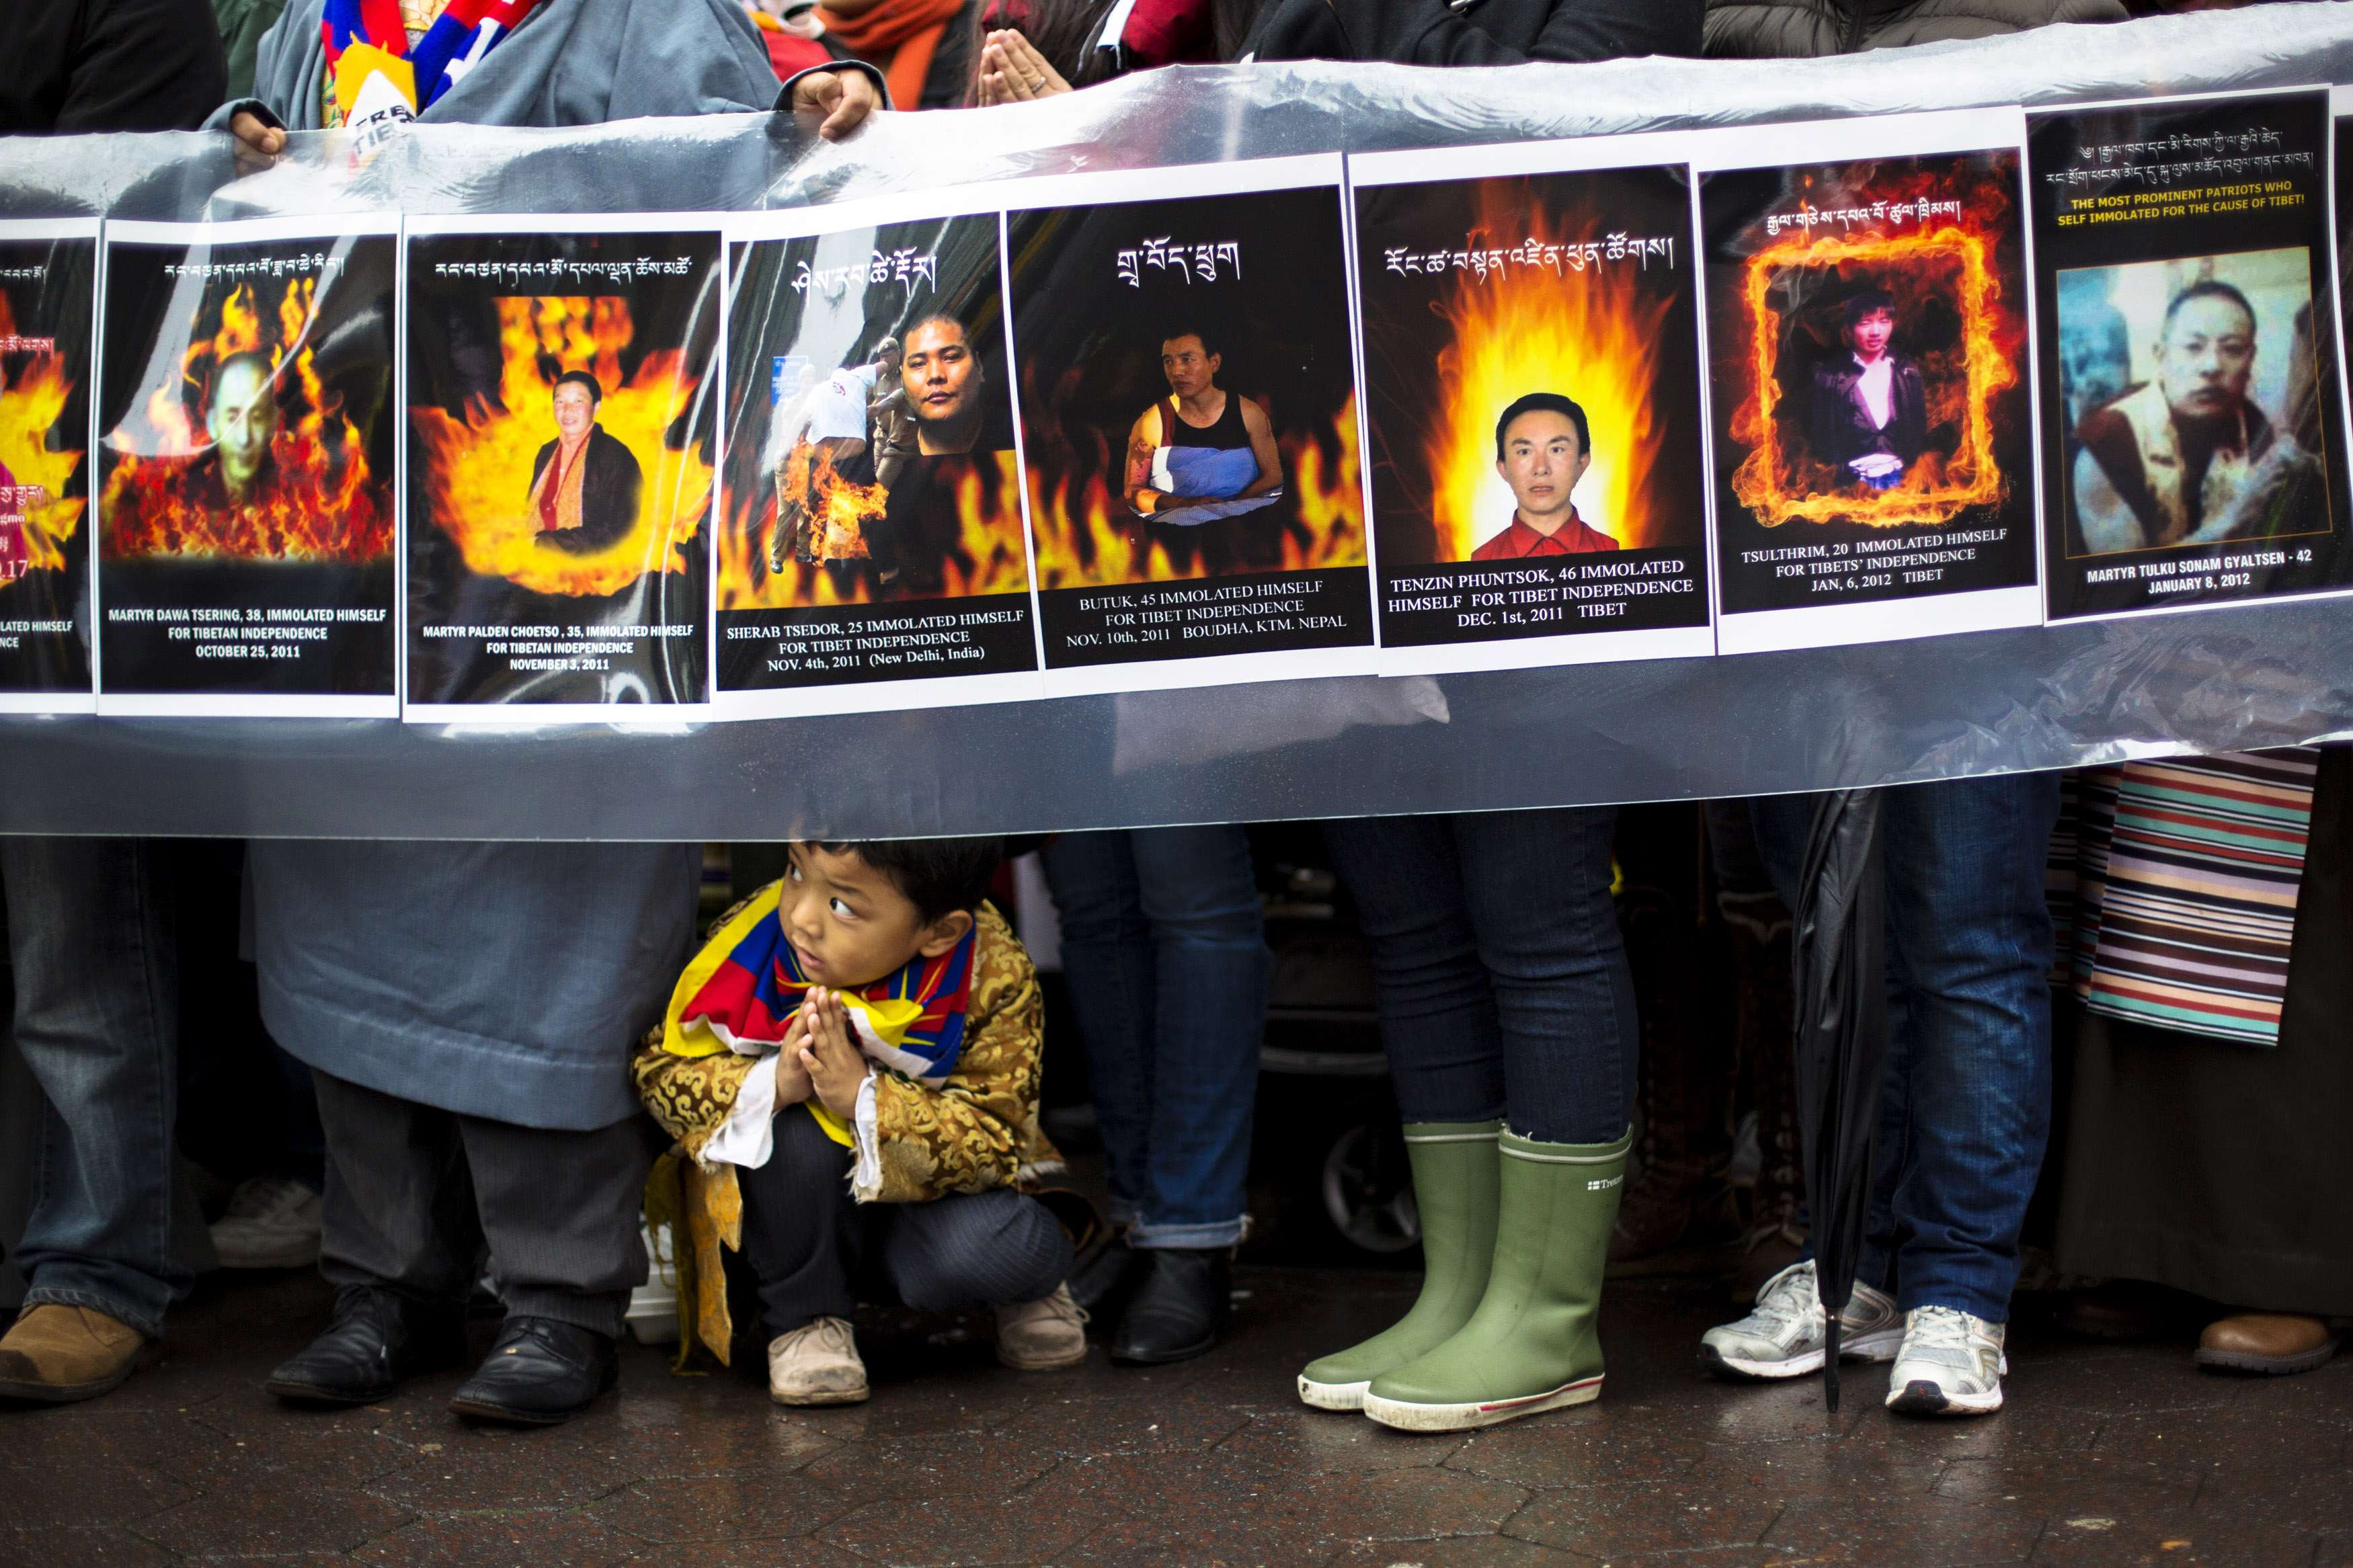 A child gestures at feet of protesters during solidarity march from Chinese Consulate to UN Headquarters in support of Tibet in New York